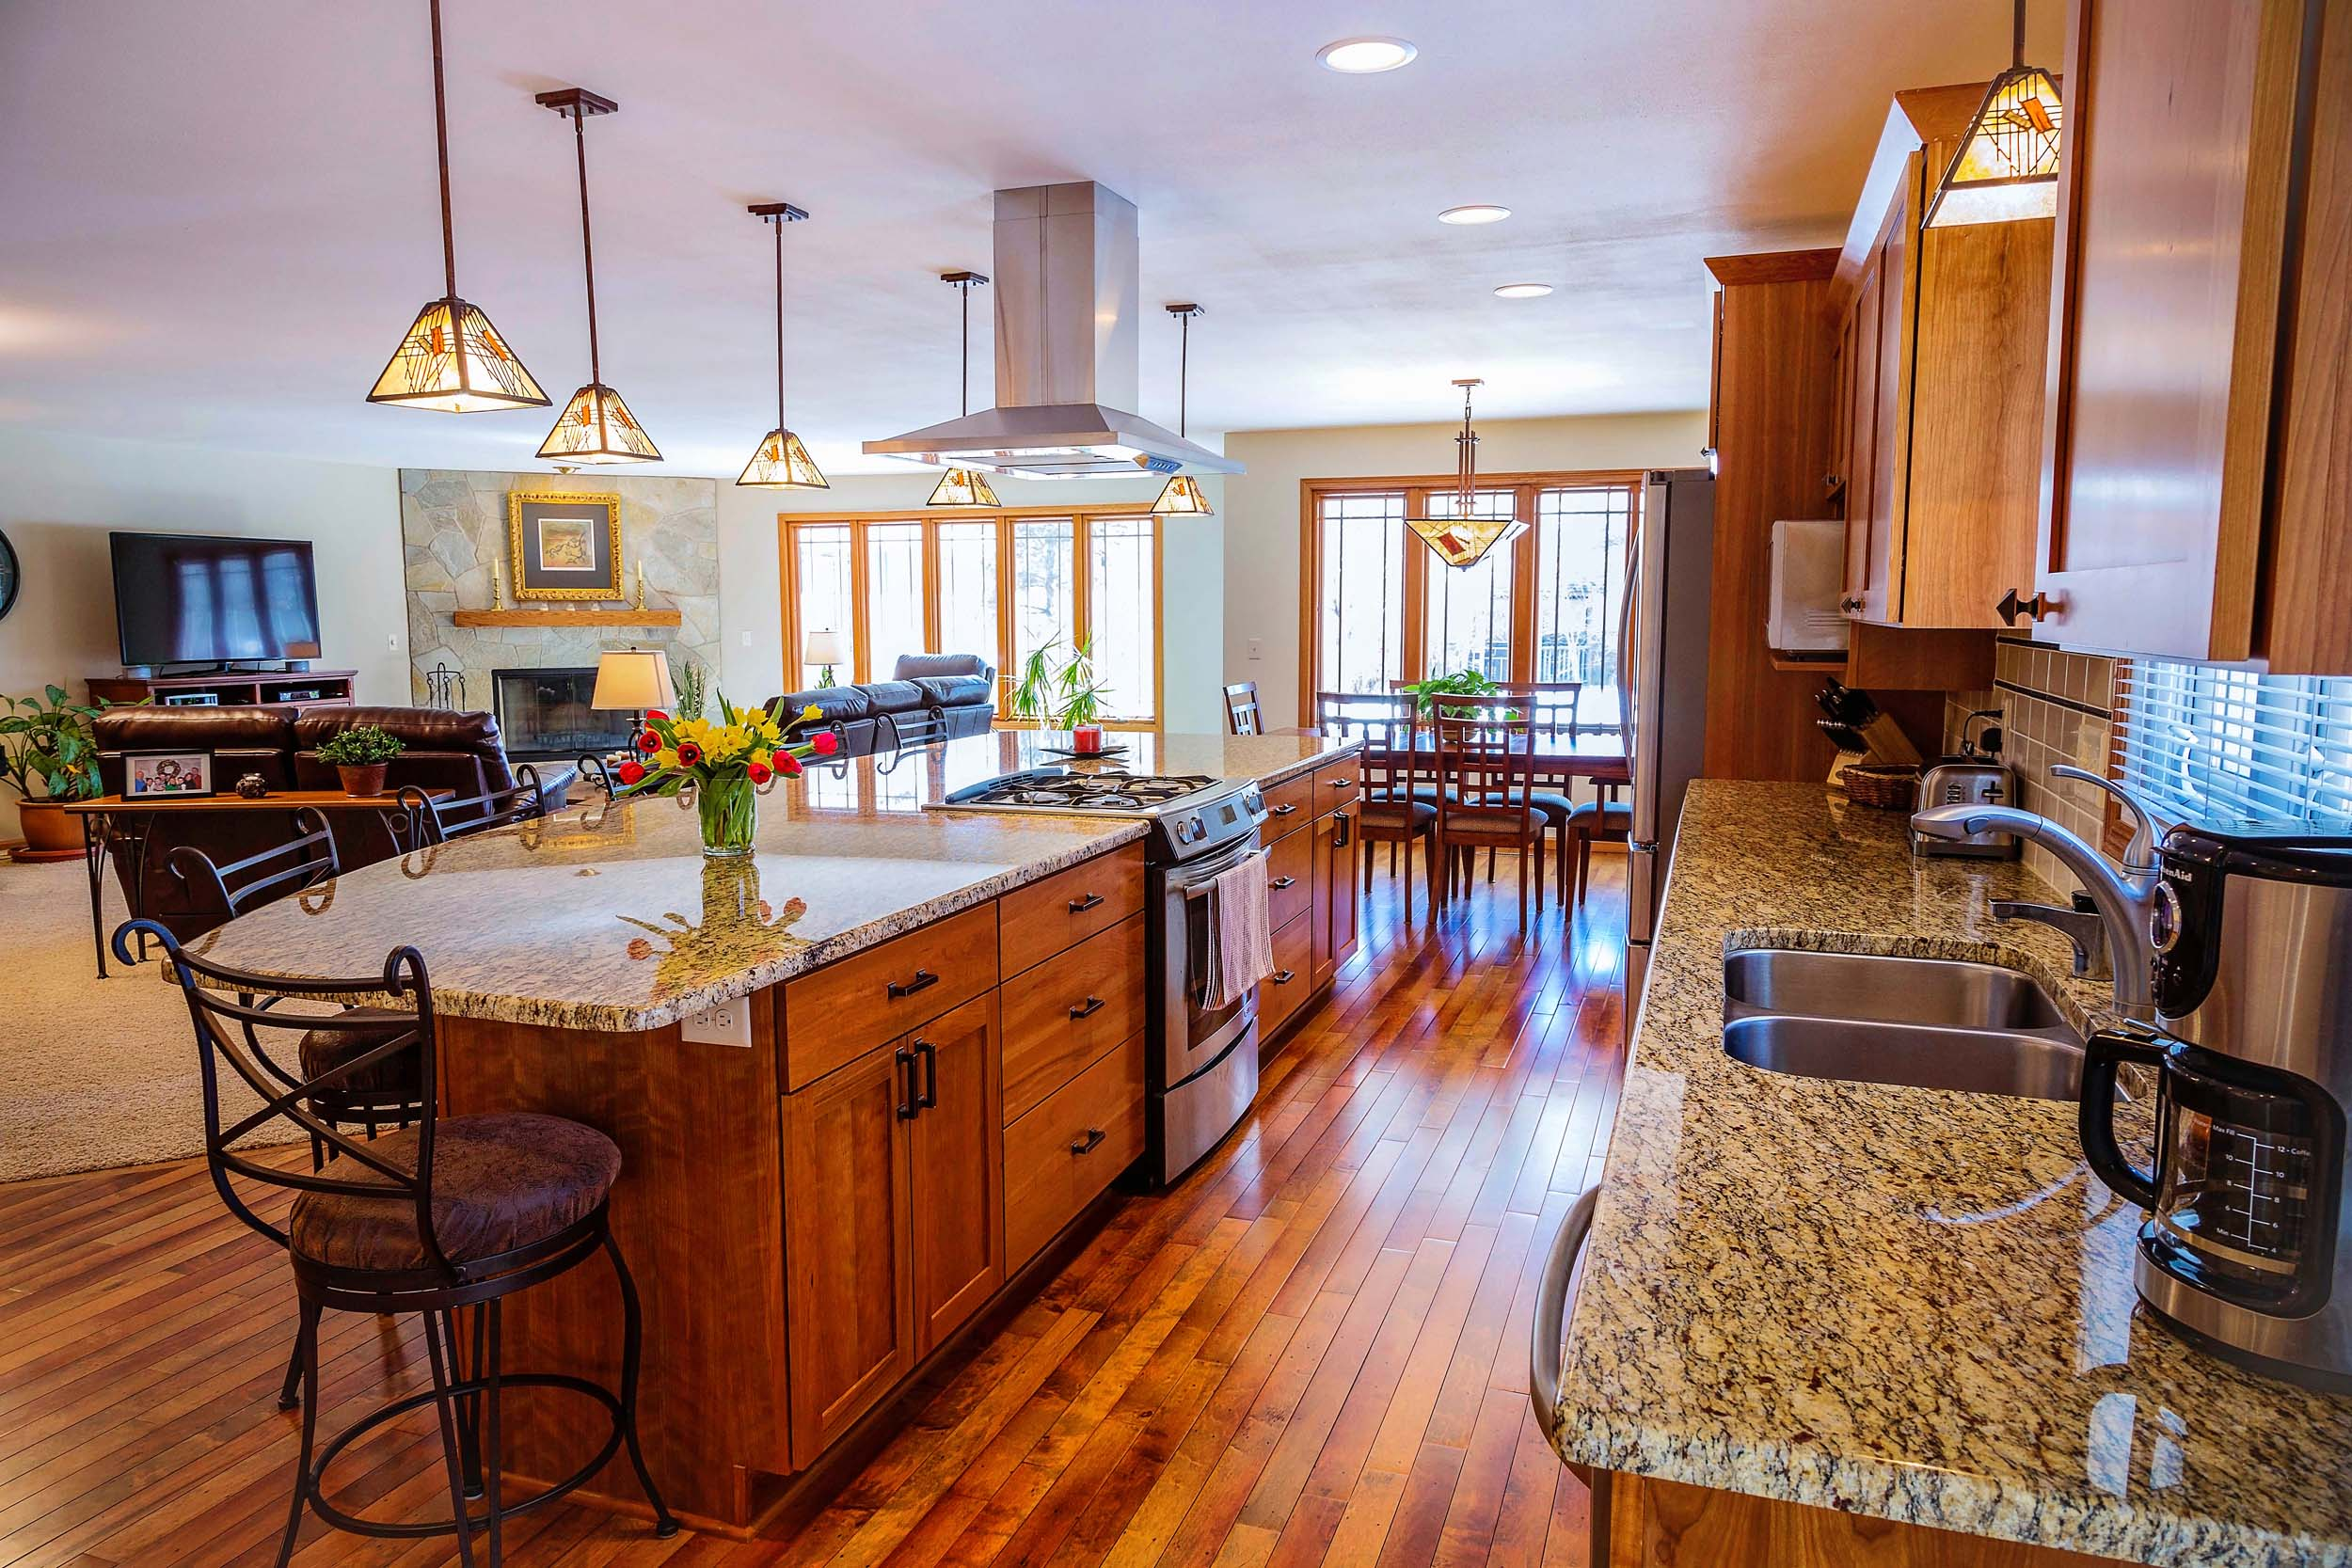 How To Create An Open Concept Floor Plan In An Existing Home Degnan Design Build Remodel